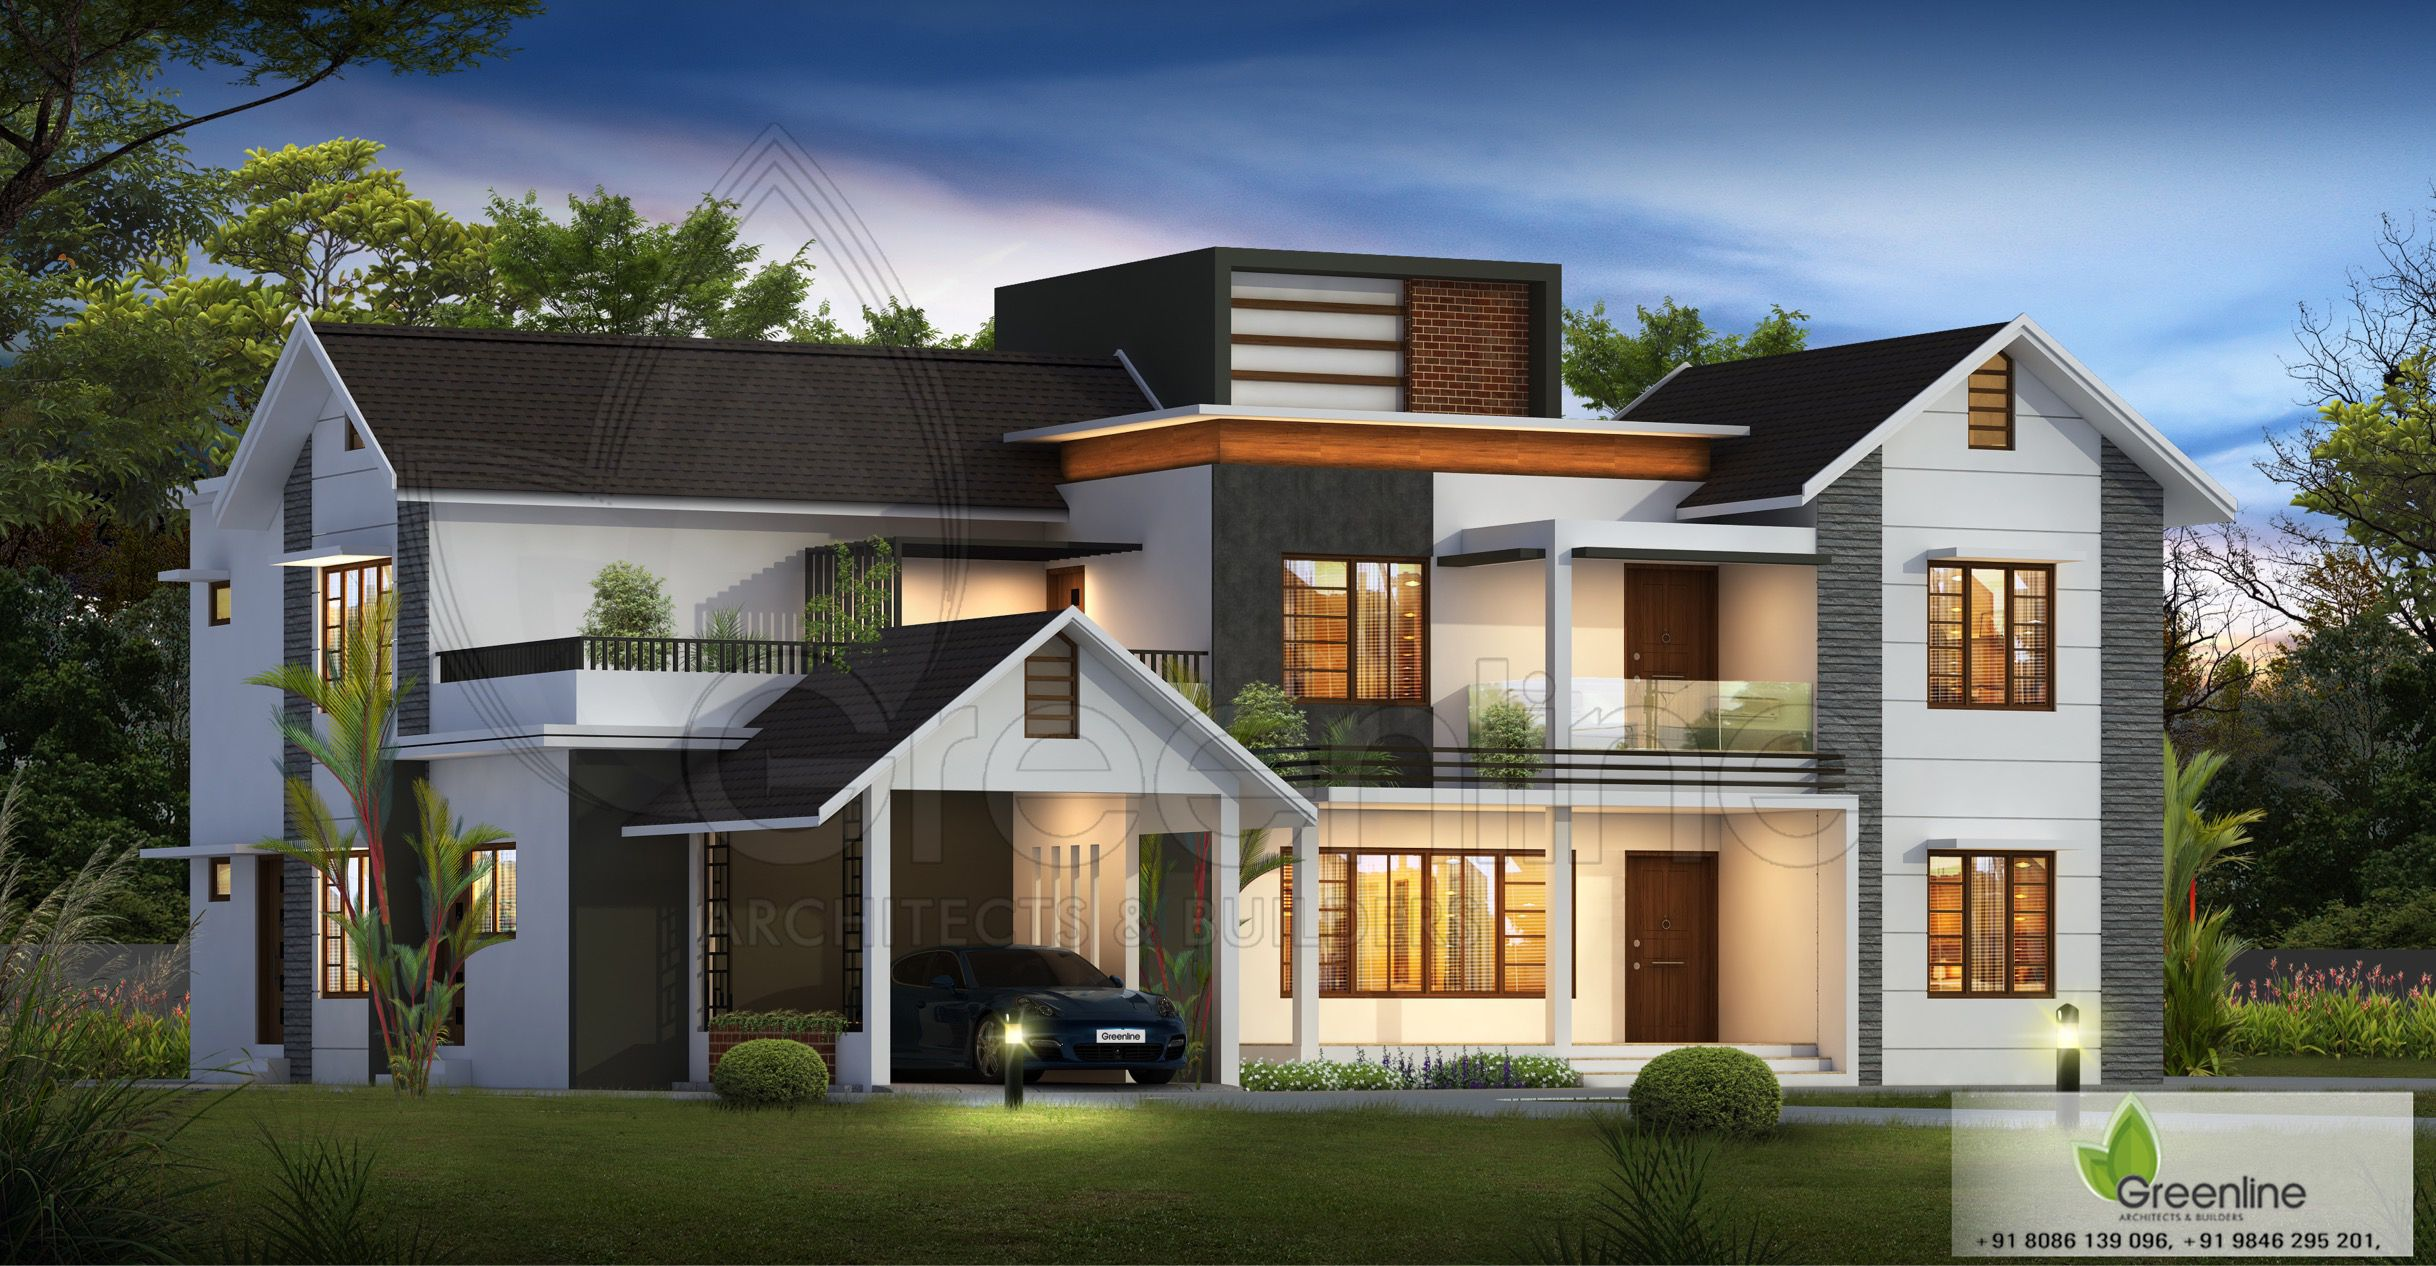 Mixed Roof Design In 2020 Kerala House Design Duplex House Design Eco House Design